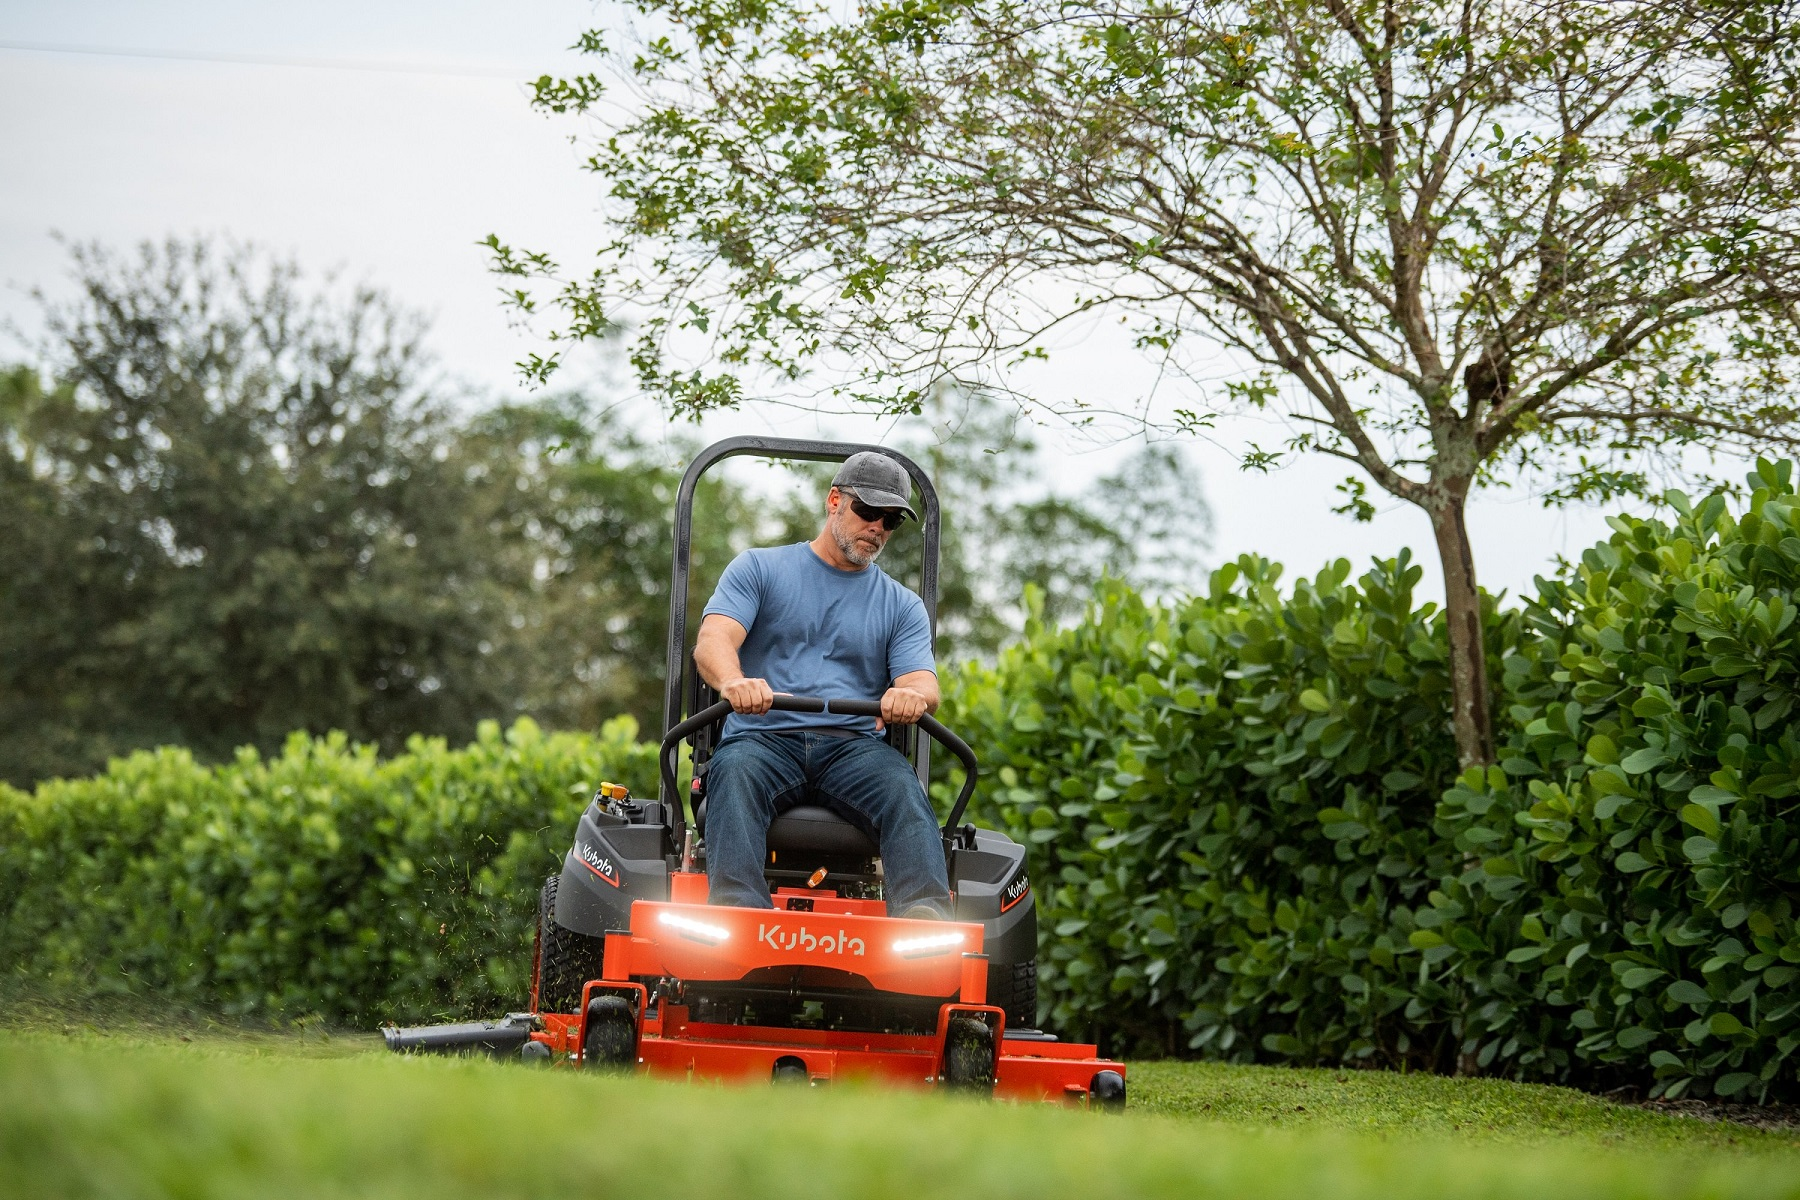 Kubota zero turn mower z200